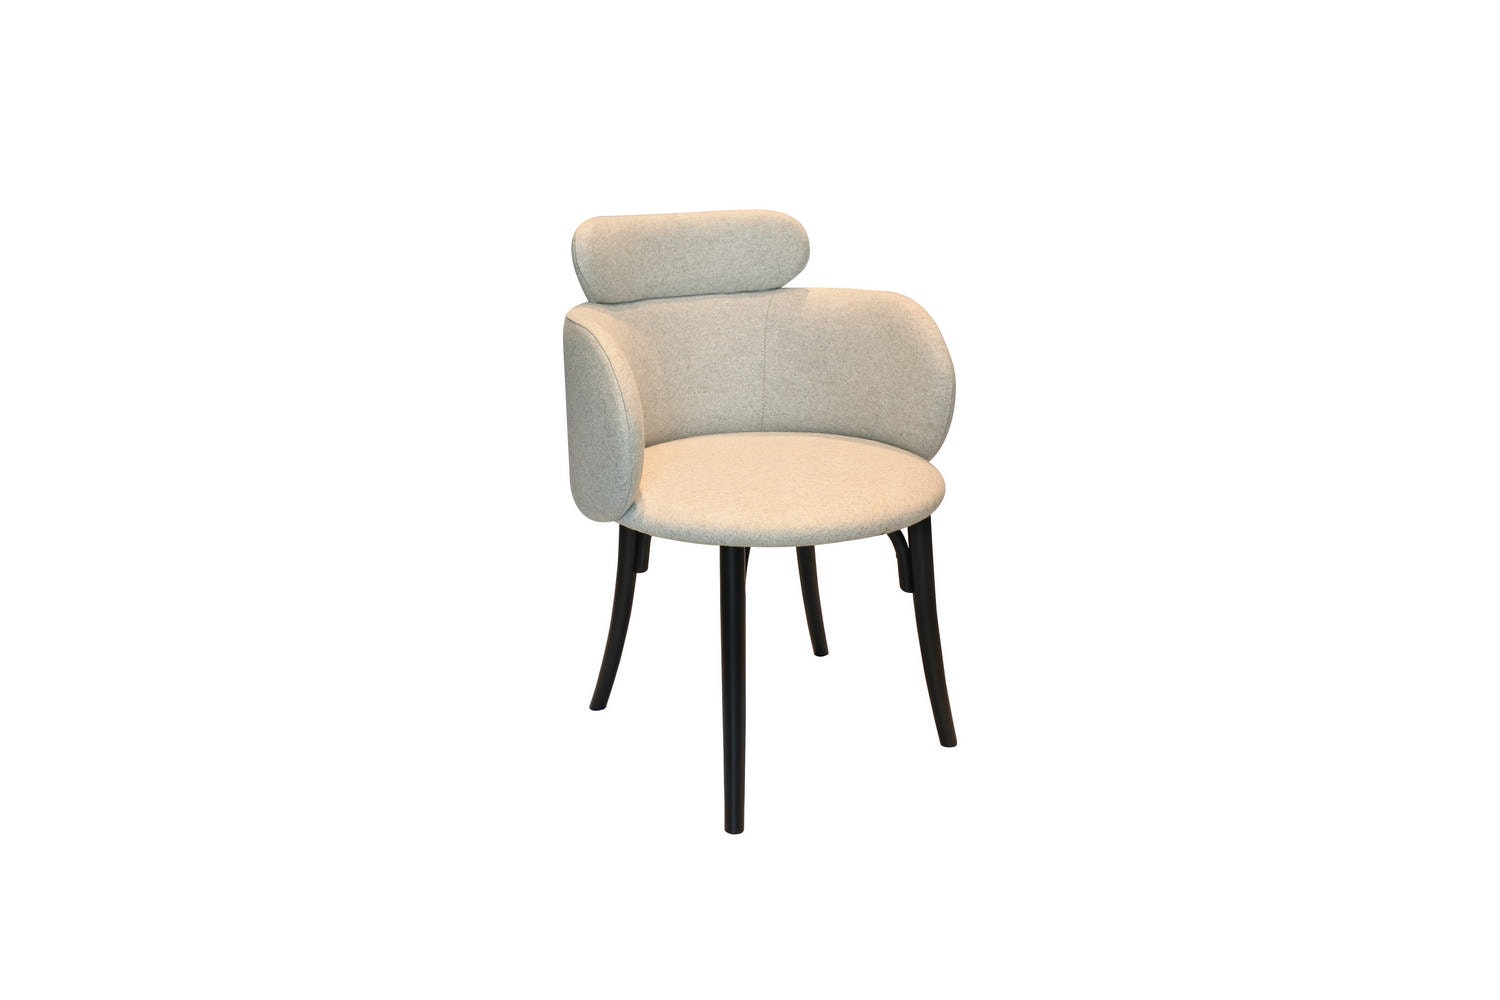 Malit Chair by Gordon Guillaumier for Gebruder Thonet Vienna GmbH